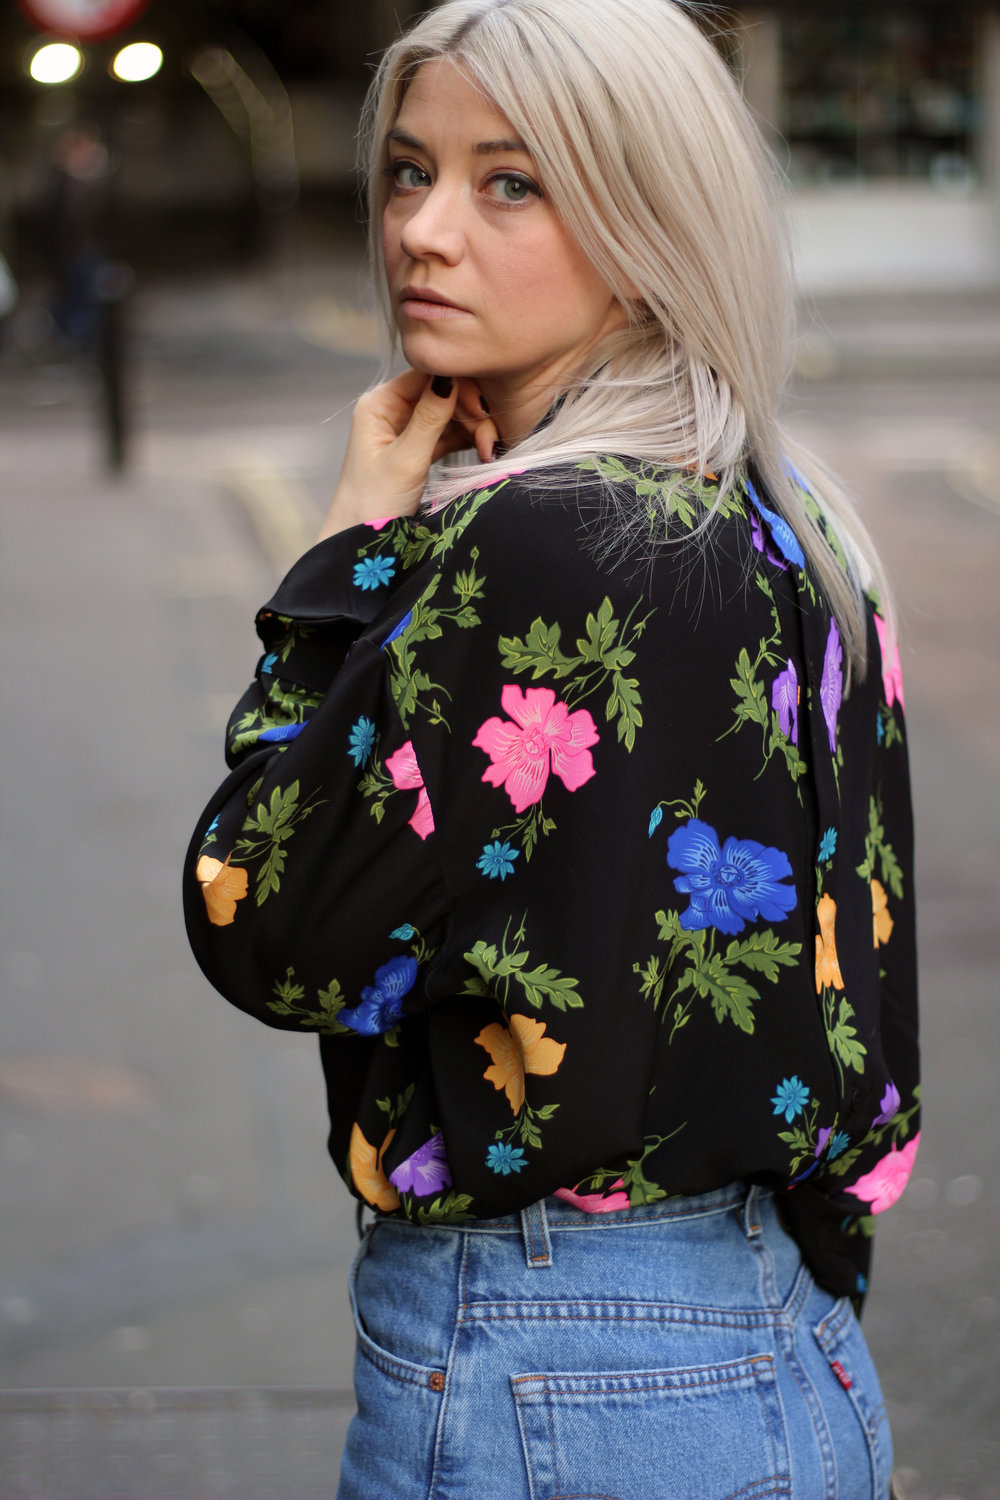 Topshop boutique silk blouse, blogging with a full time job, northern magpie, joey taylor 1